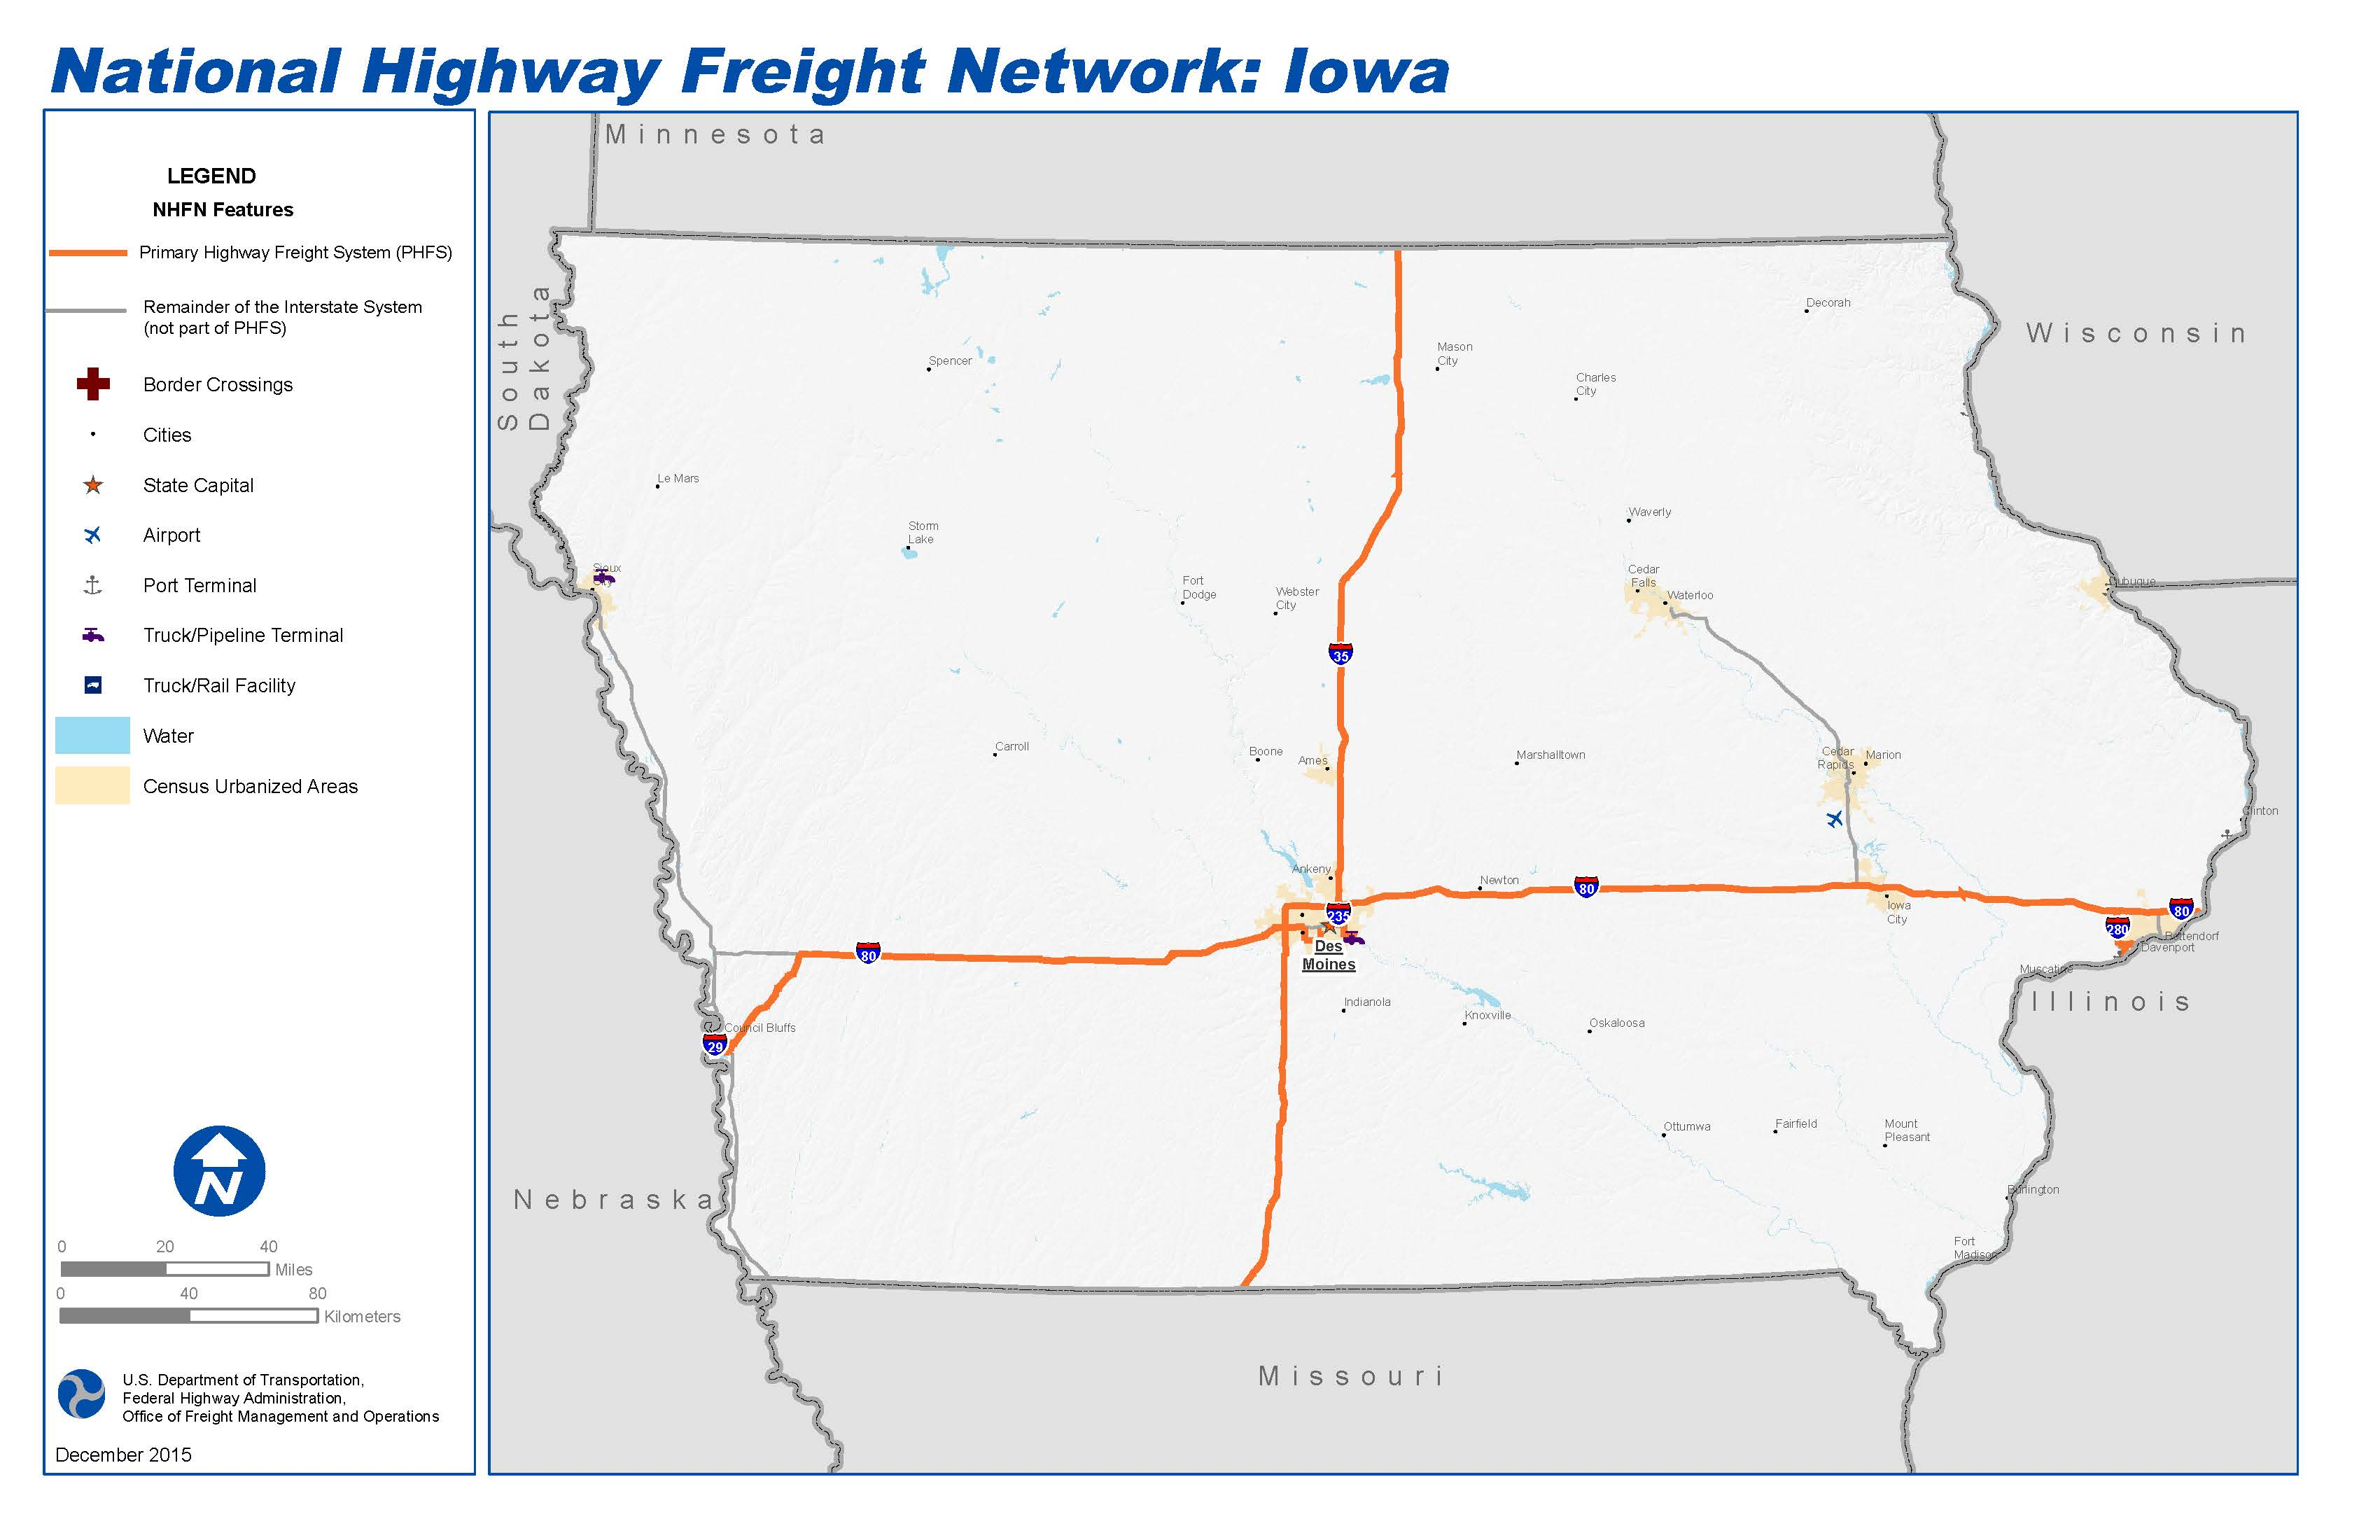 Iowa Highway Map National Highway Freight Network Map and Tables for Iowa   FHWA  Iowa Highway Map